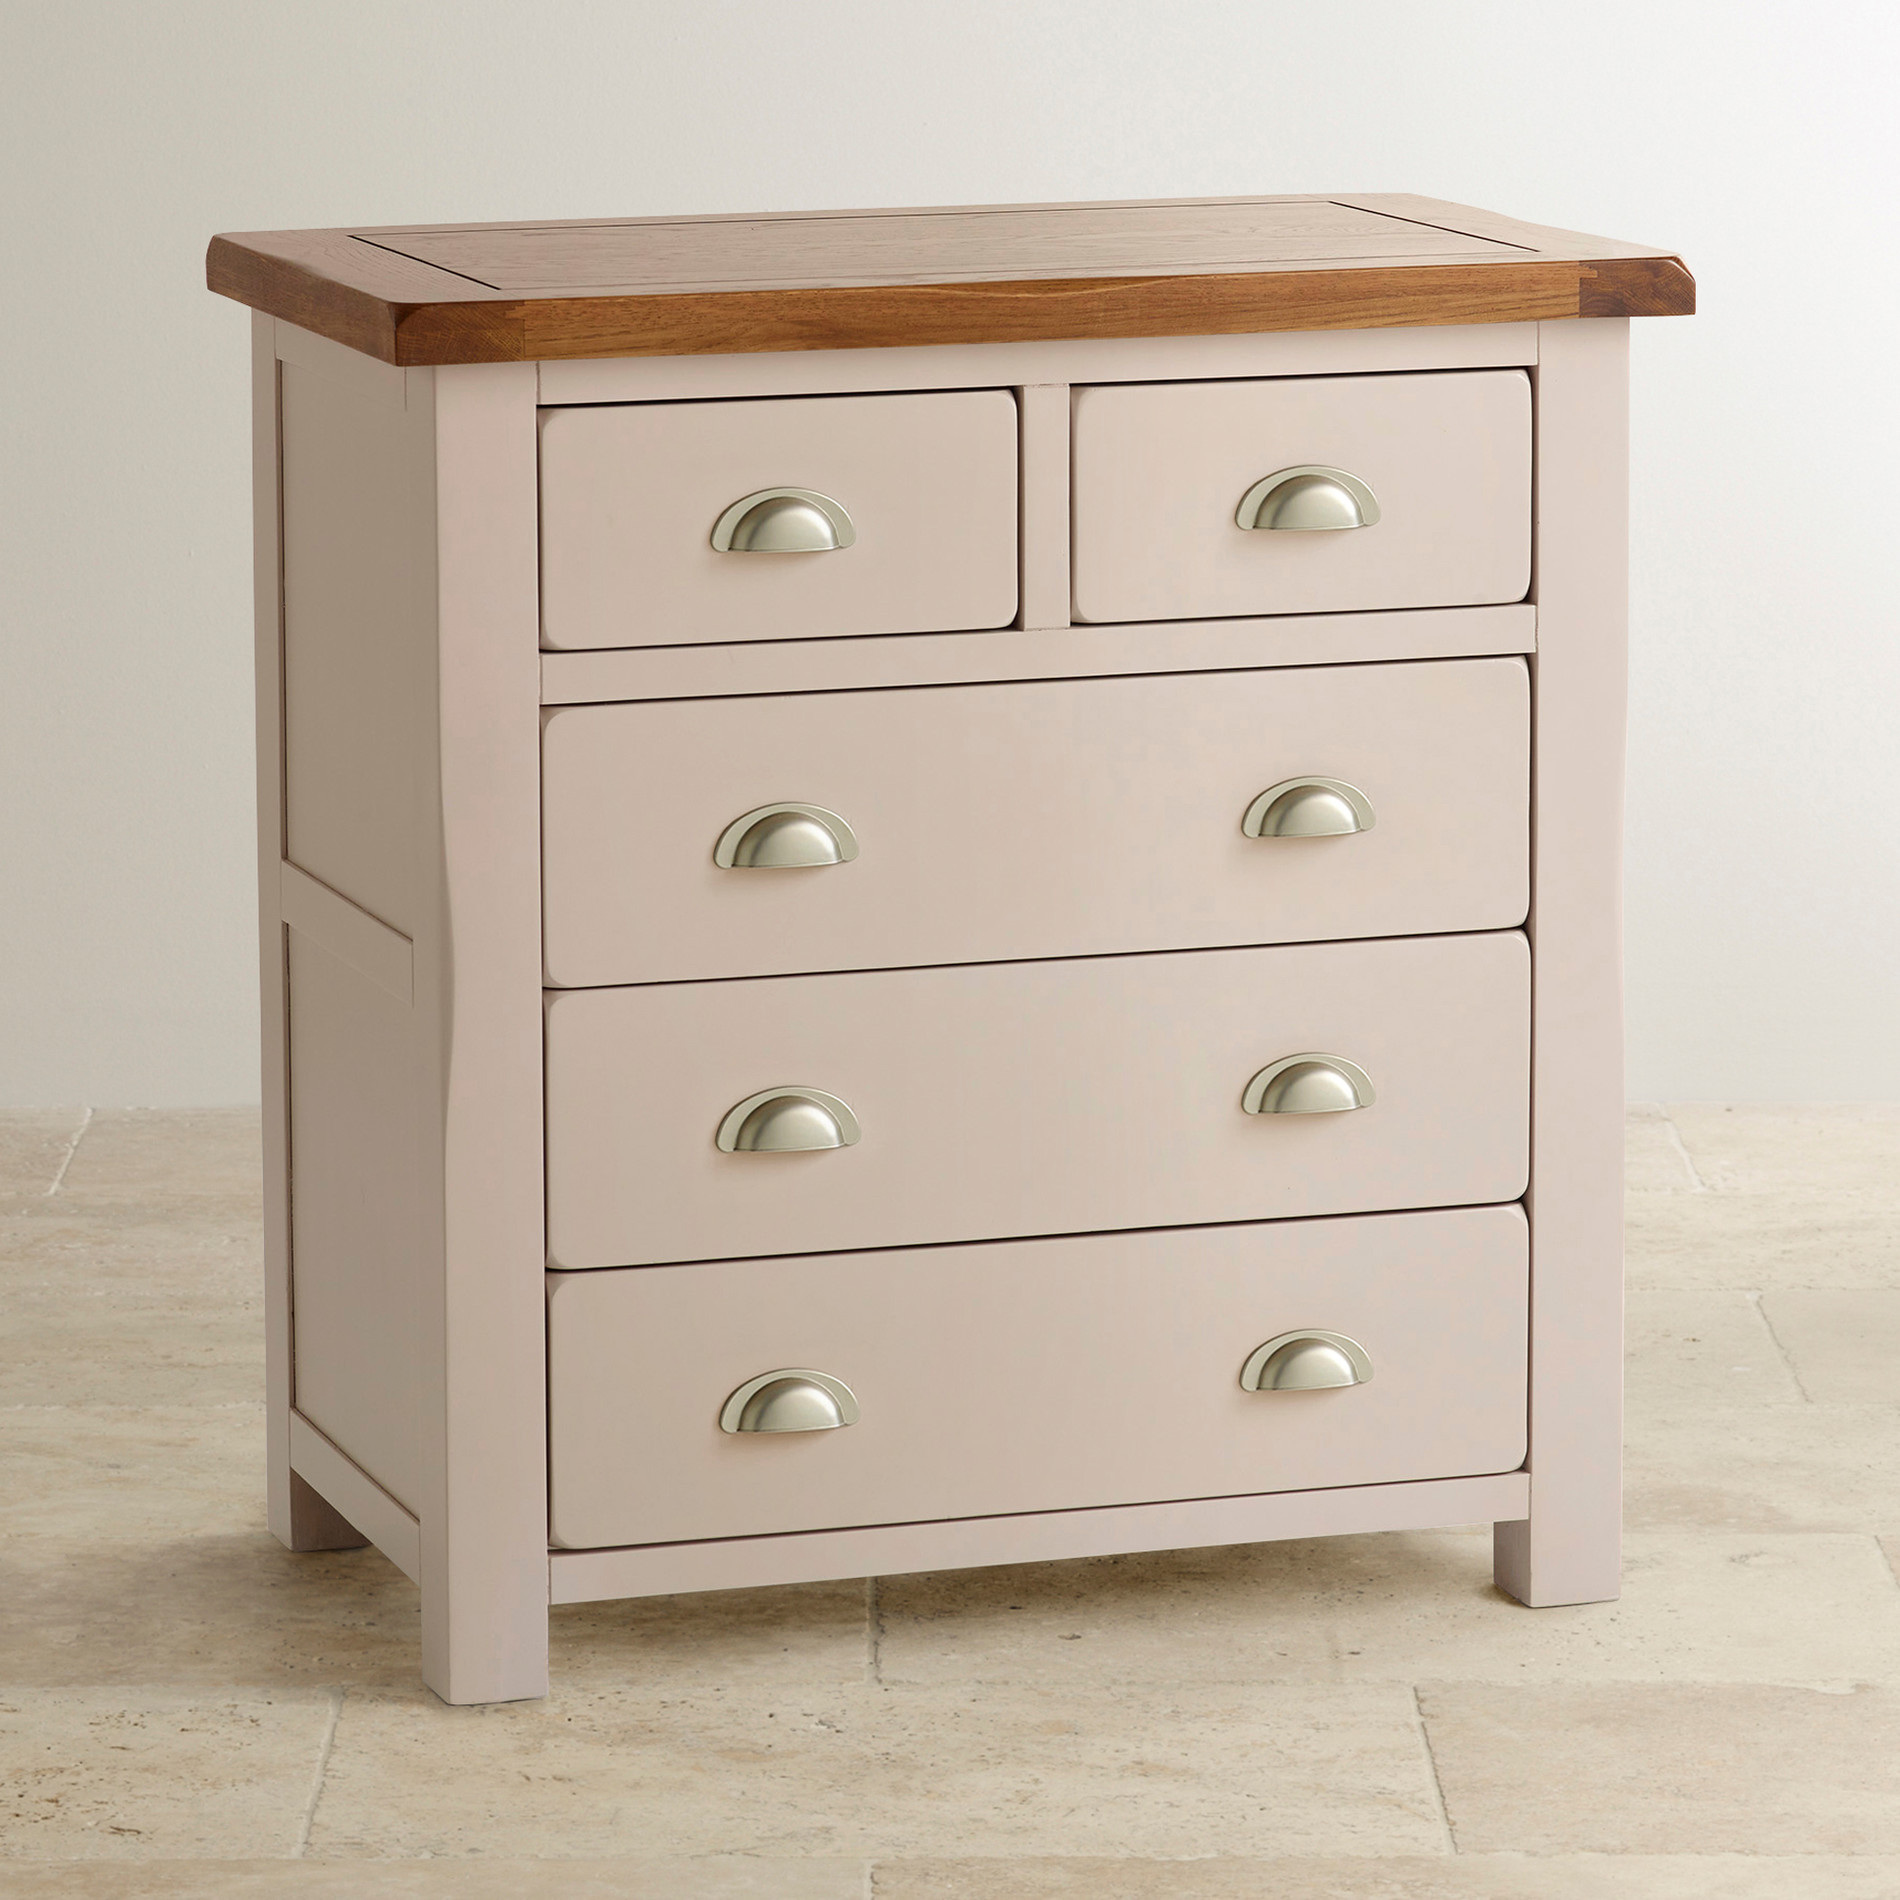 Daisy chest of drawers in painted rustic oak oak Nursery chest of drawers with changer